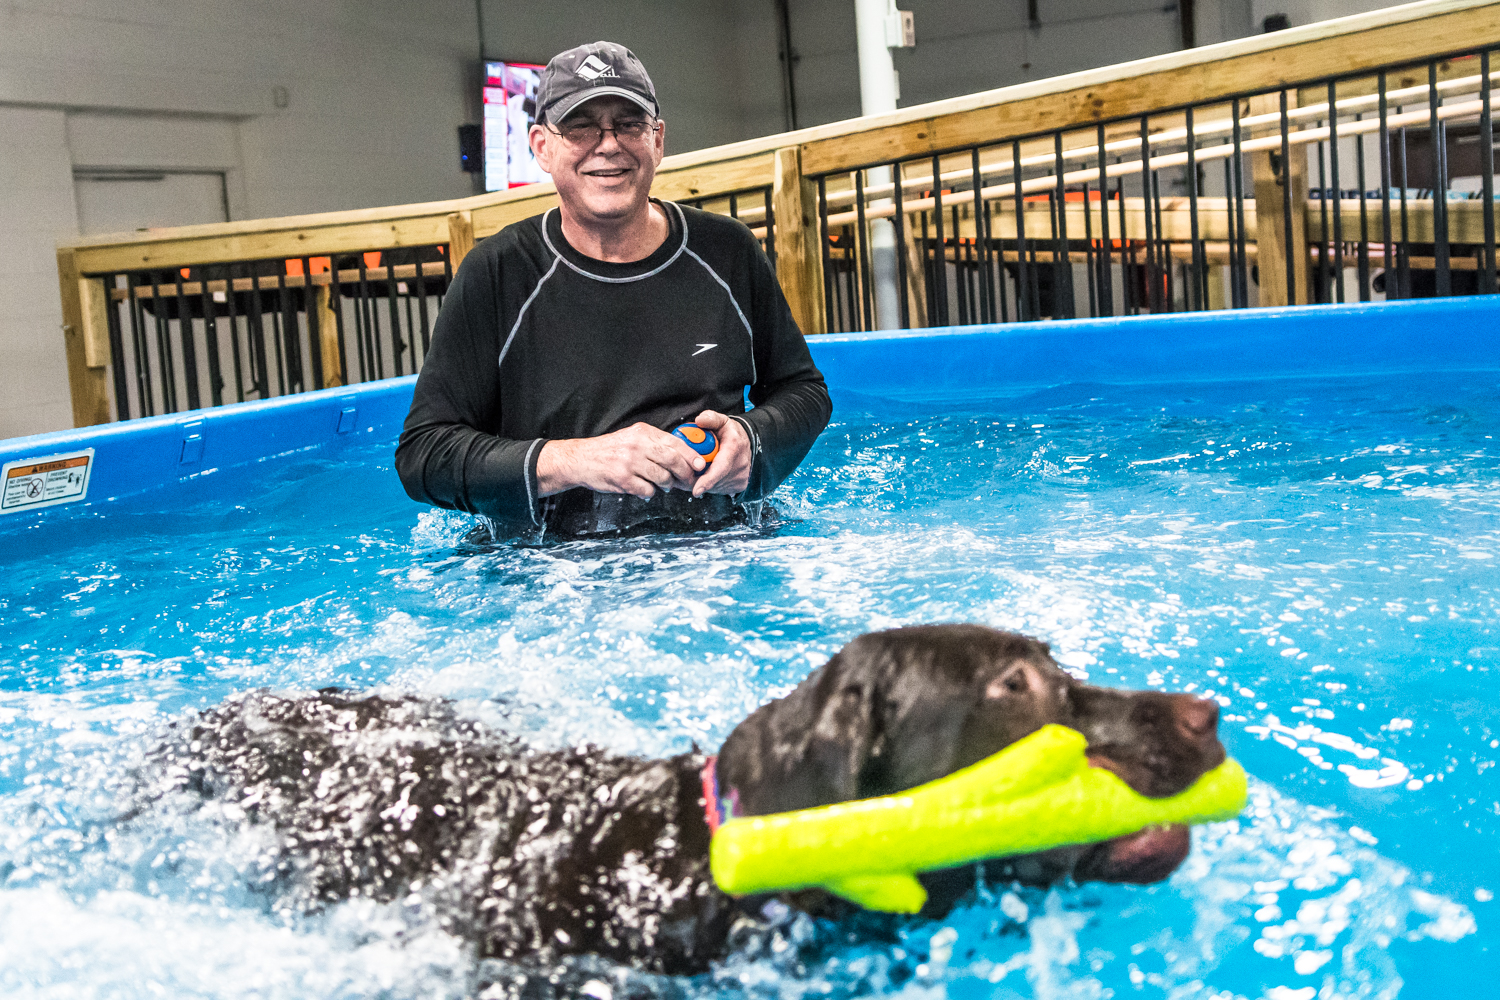 Owner of Club Aqua Paws in Downtown Racine Mike Iwon, Racine, monitors first time swimmer Tilly as she hones her newfound skills and beings playing with toys in the pool Thursday afternoon.